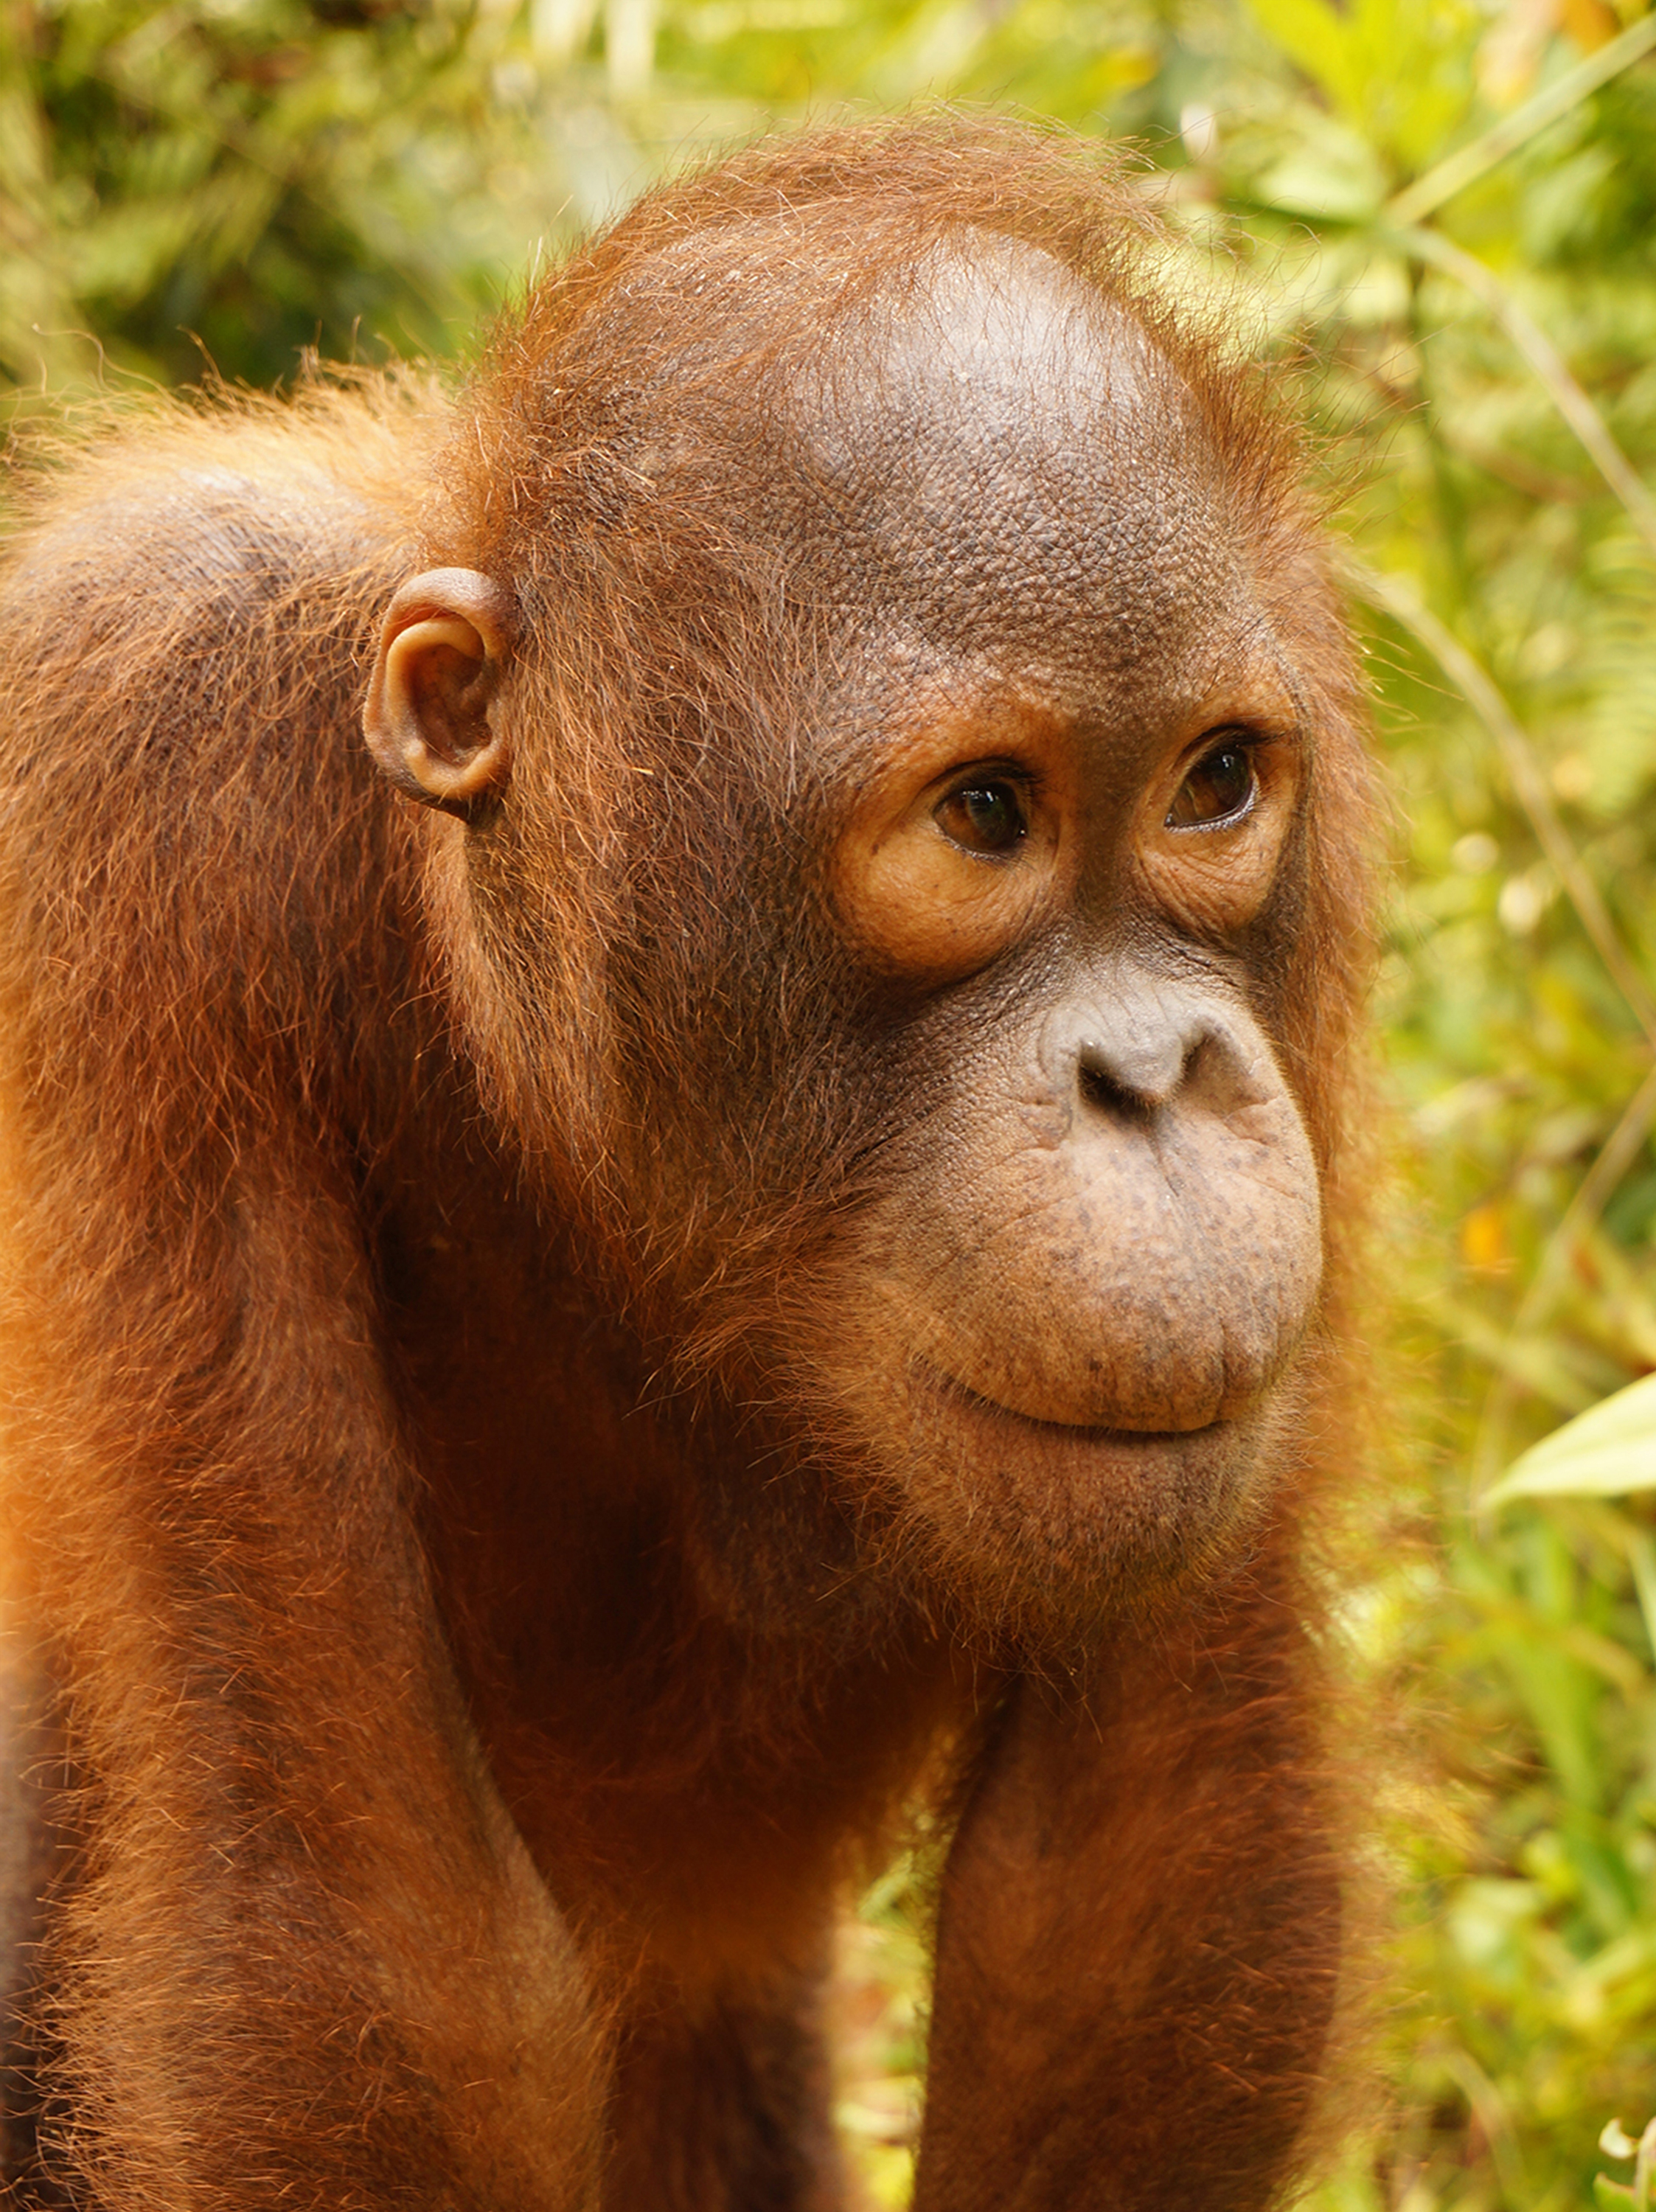 Karbank Orangutan Foundation International Foster Program